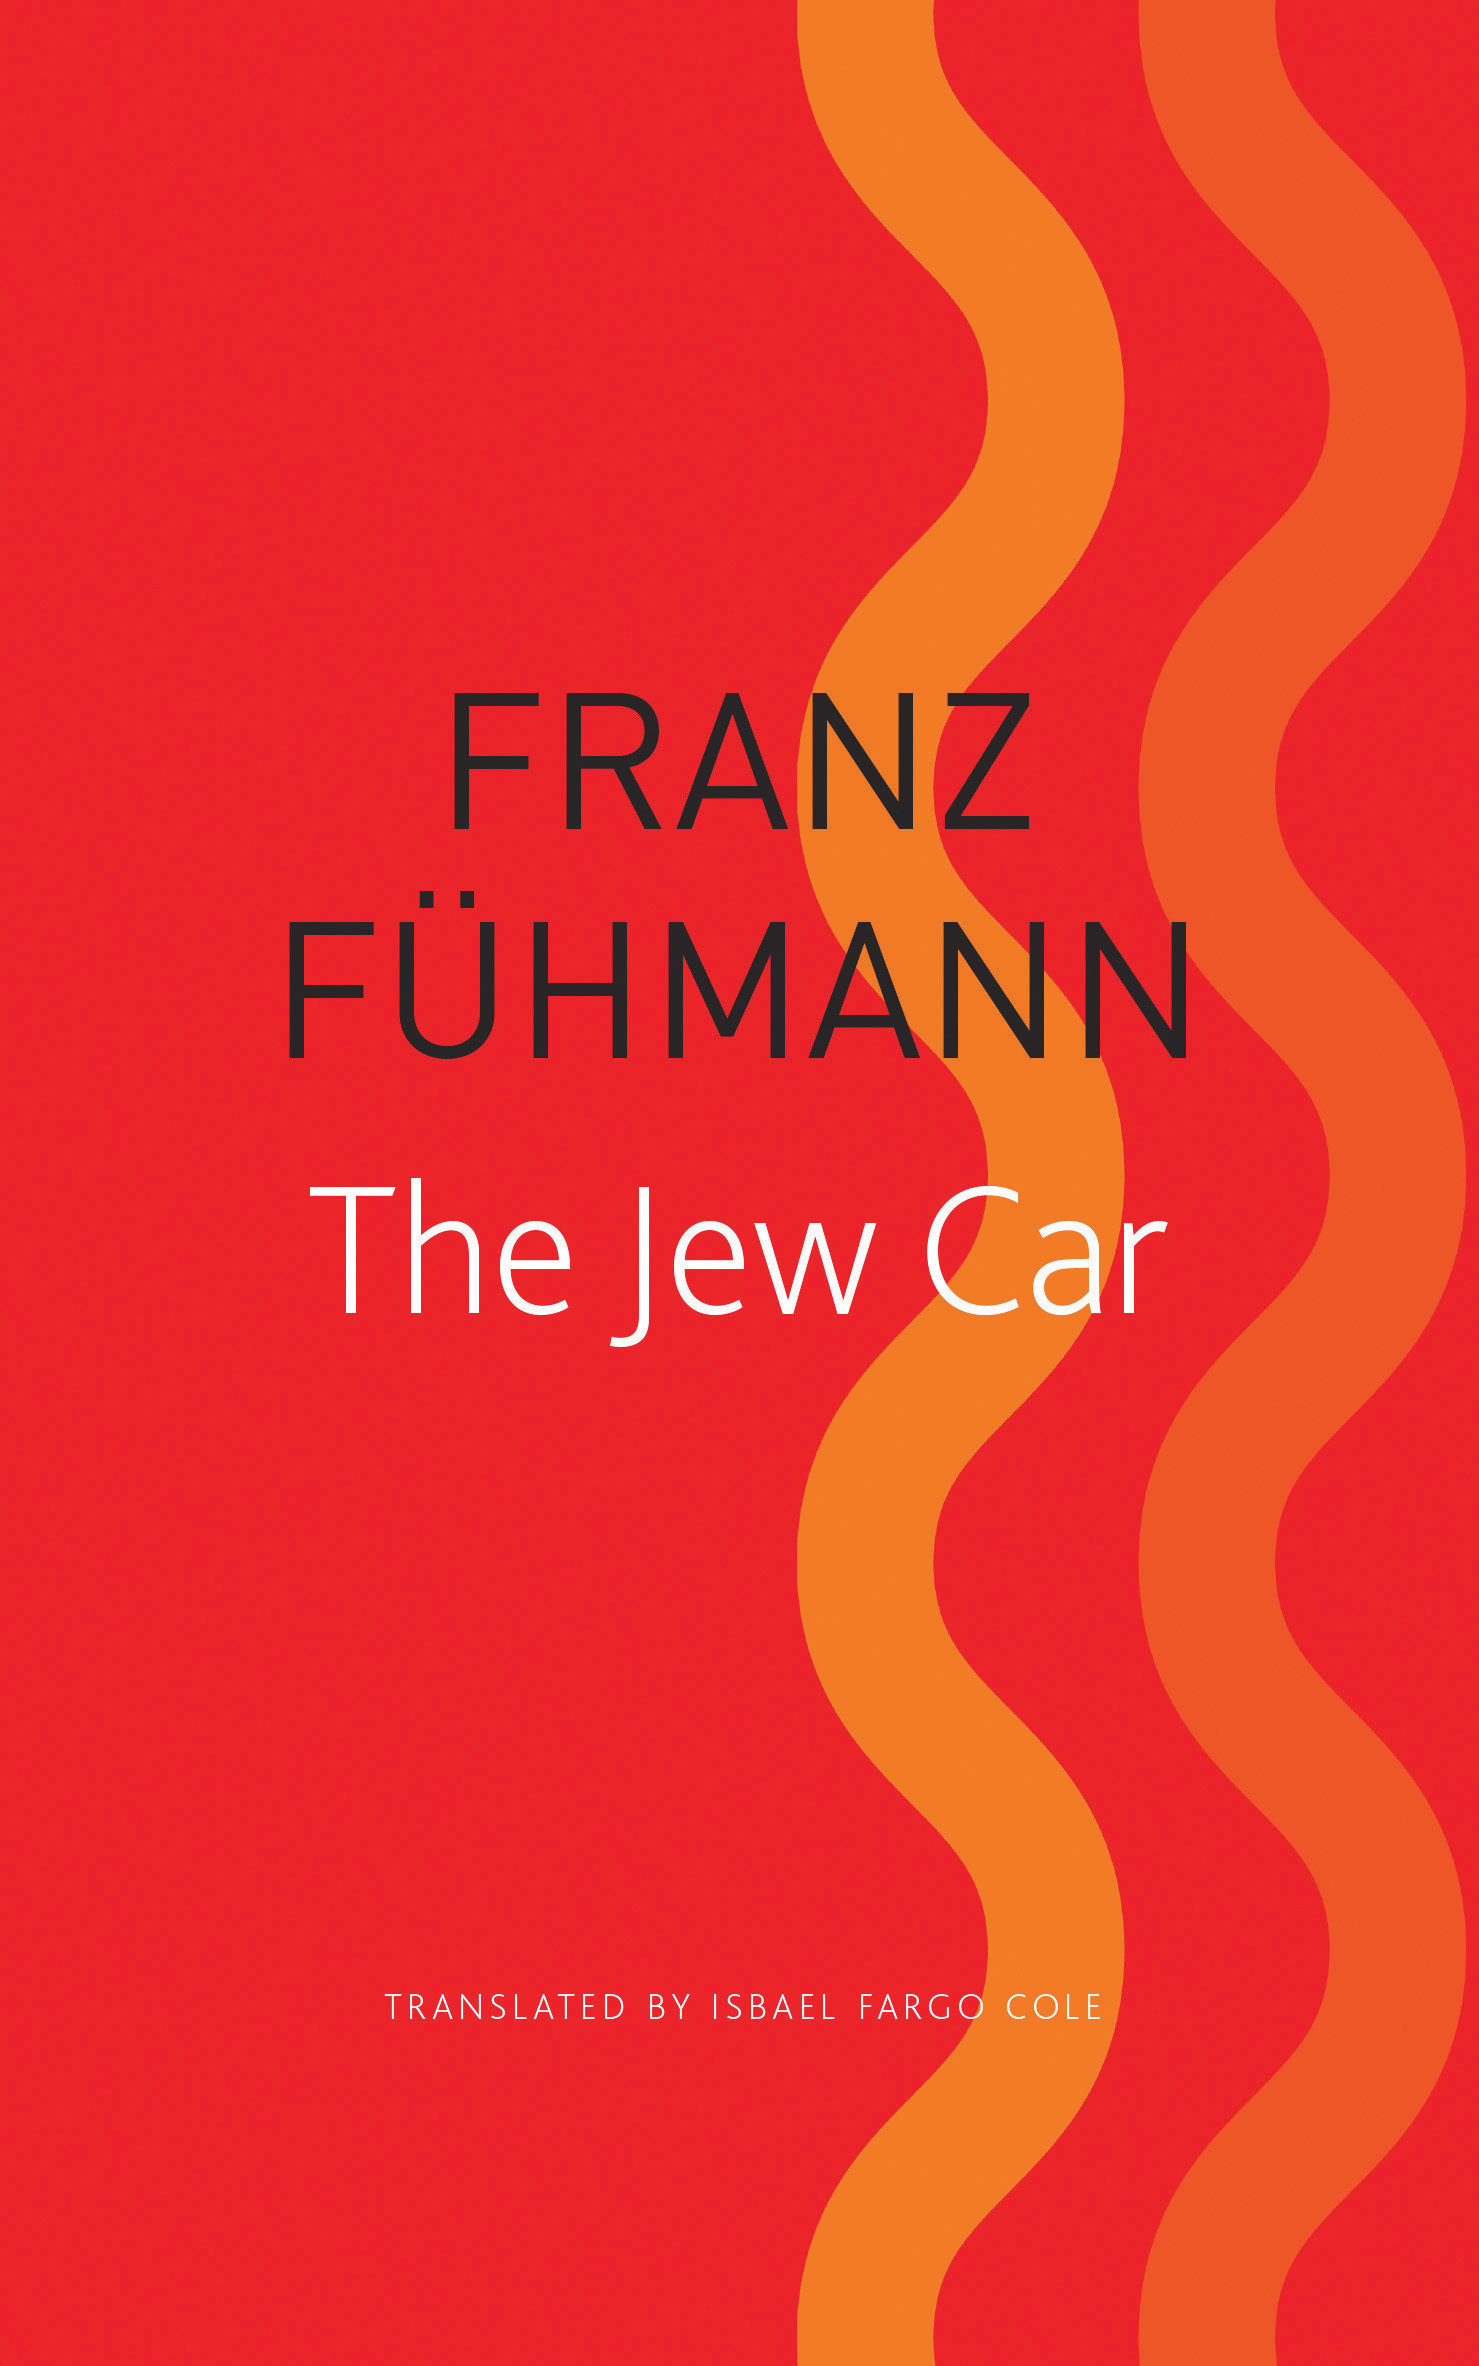 The Jew Car: Fourteen Days from Two Decades